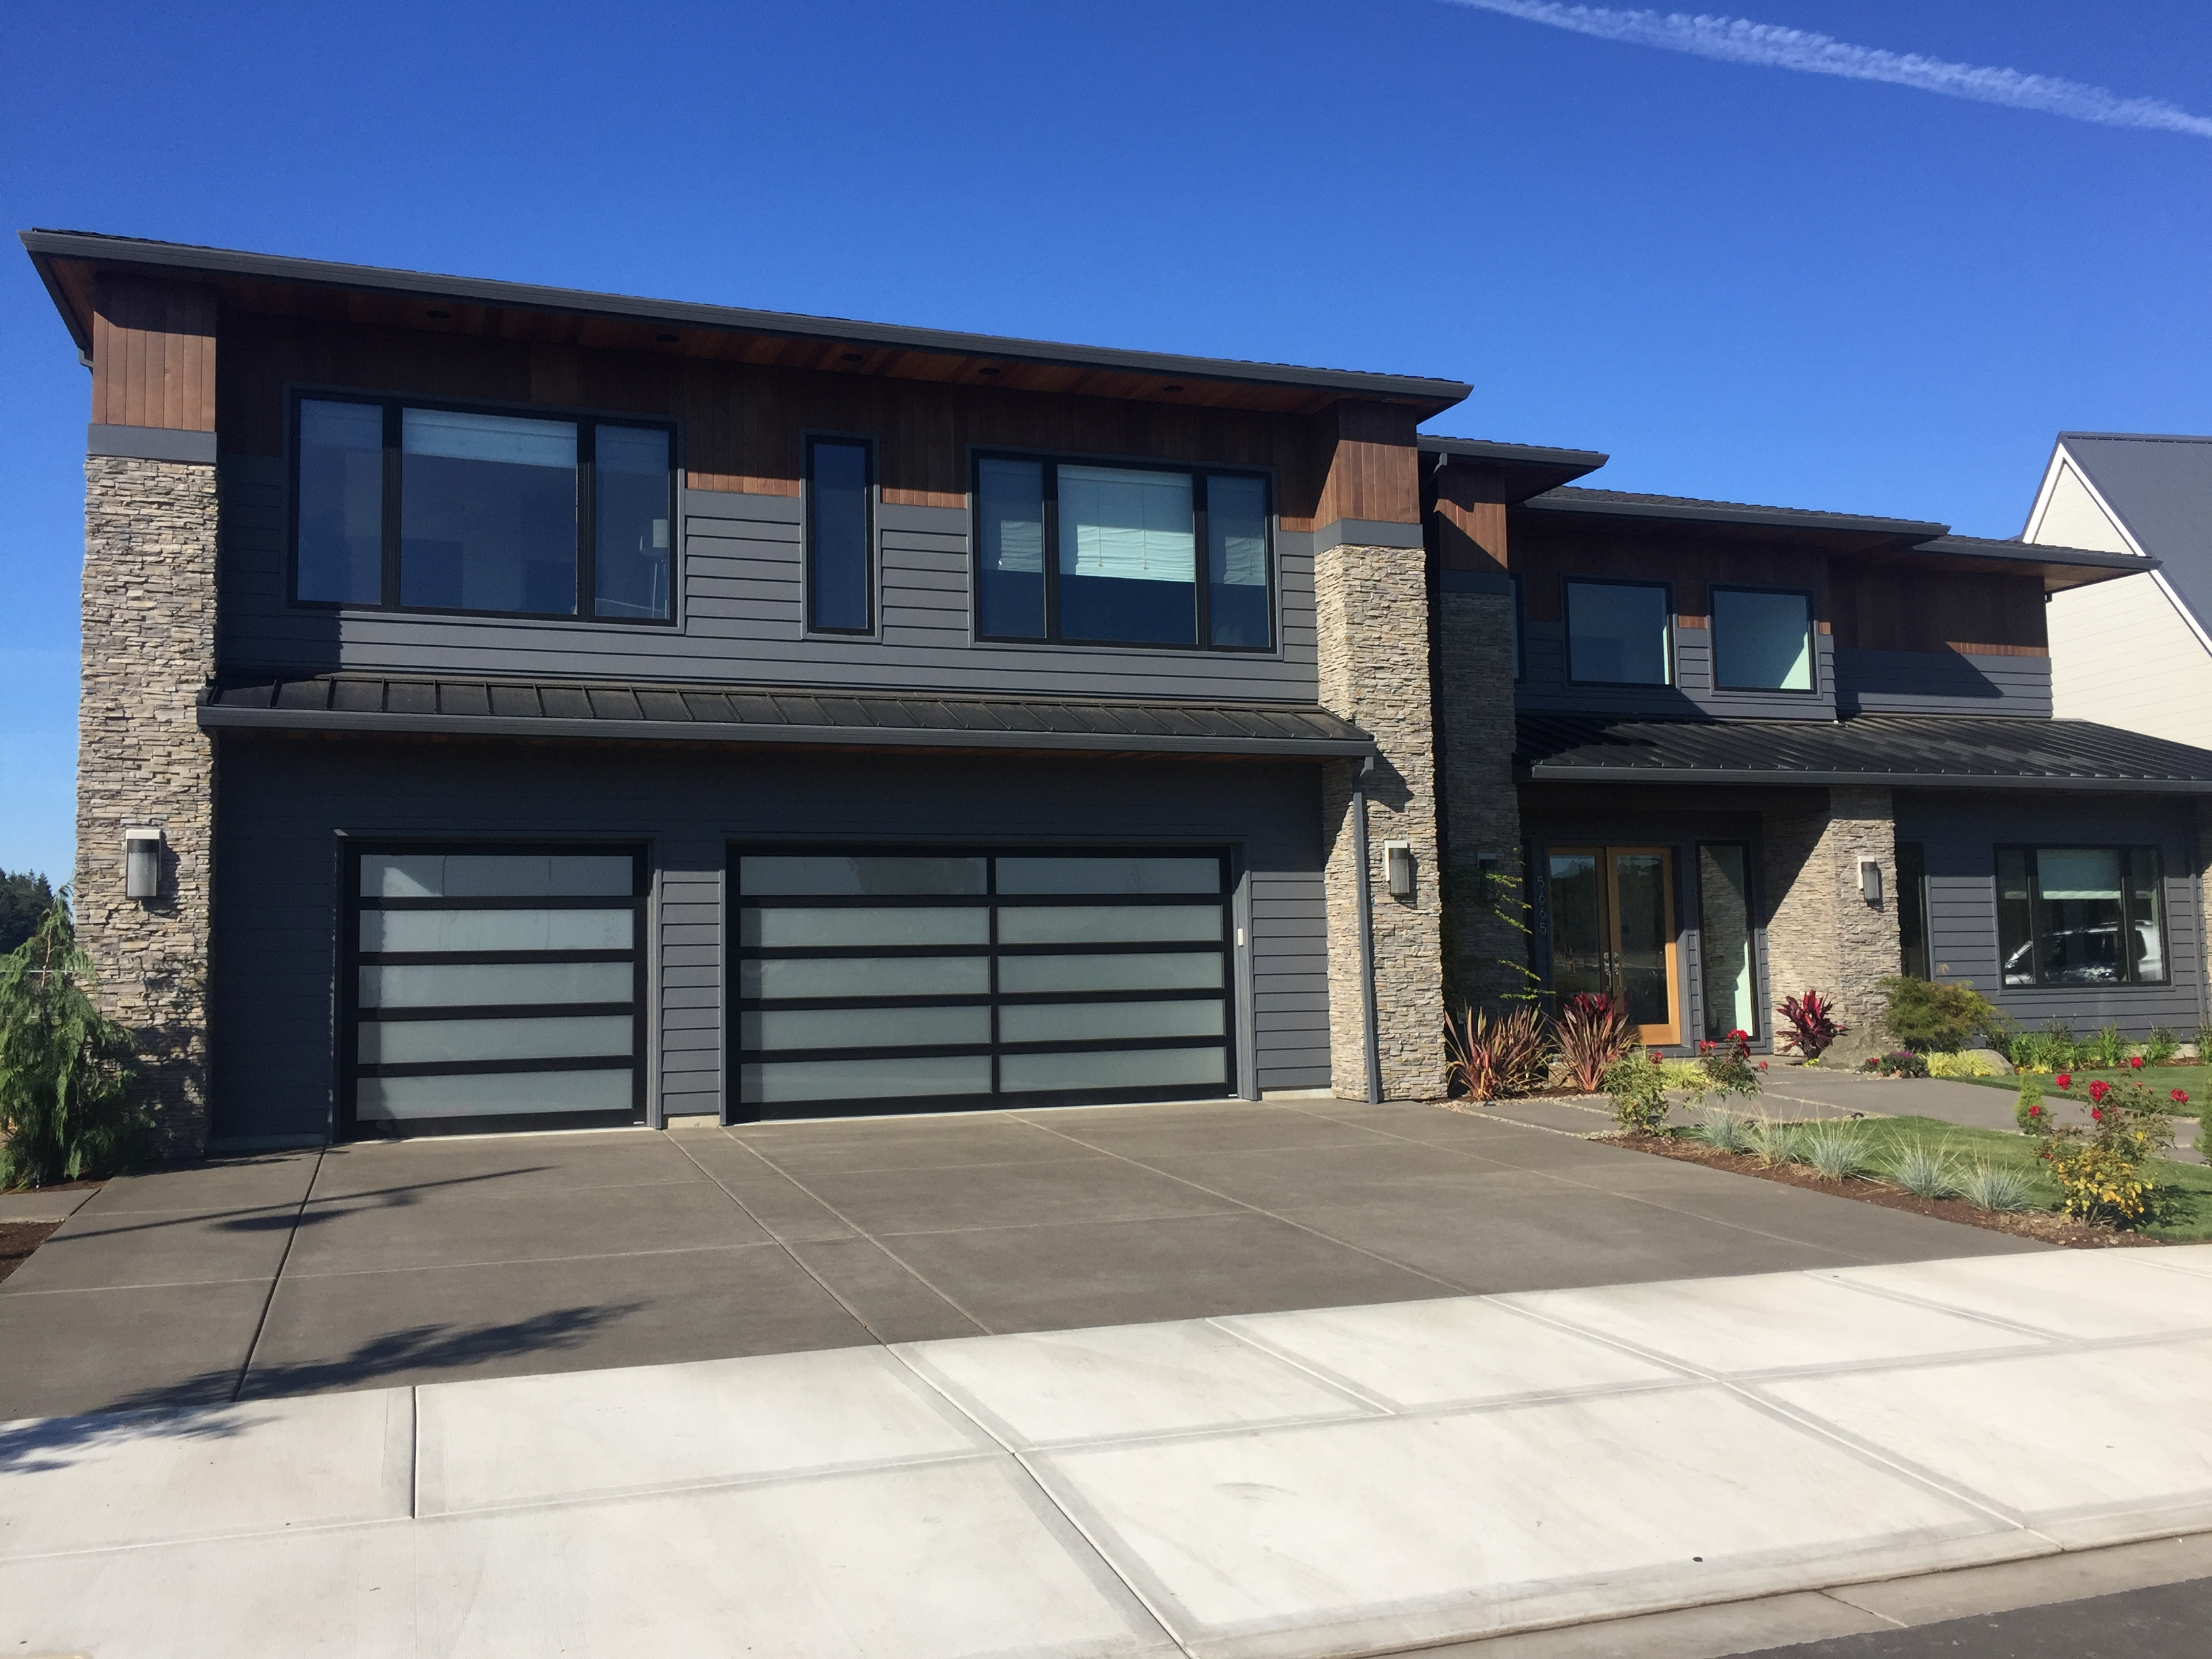 Project Of The Month Winner Jj Overhead Door Llc Northwest Door with measurements 3264 X 2448